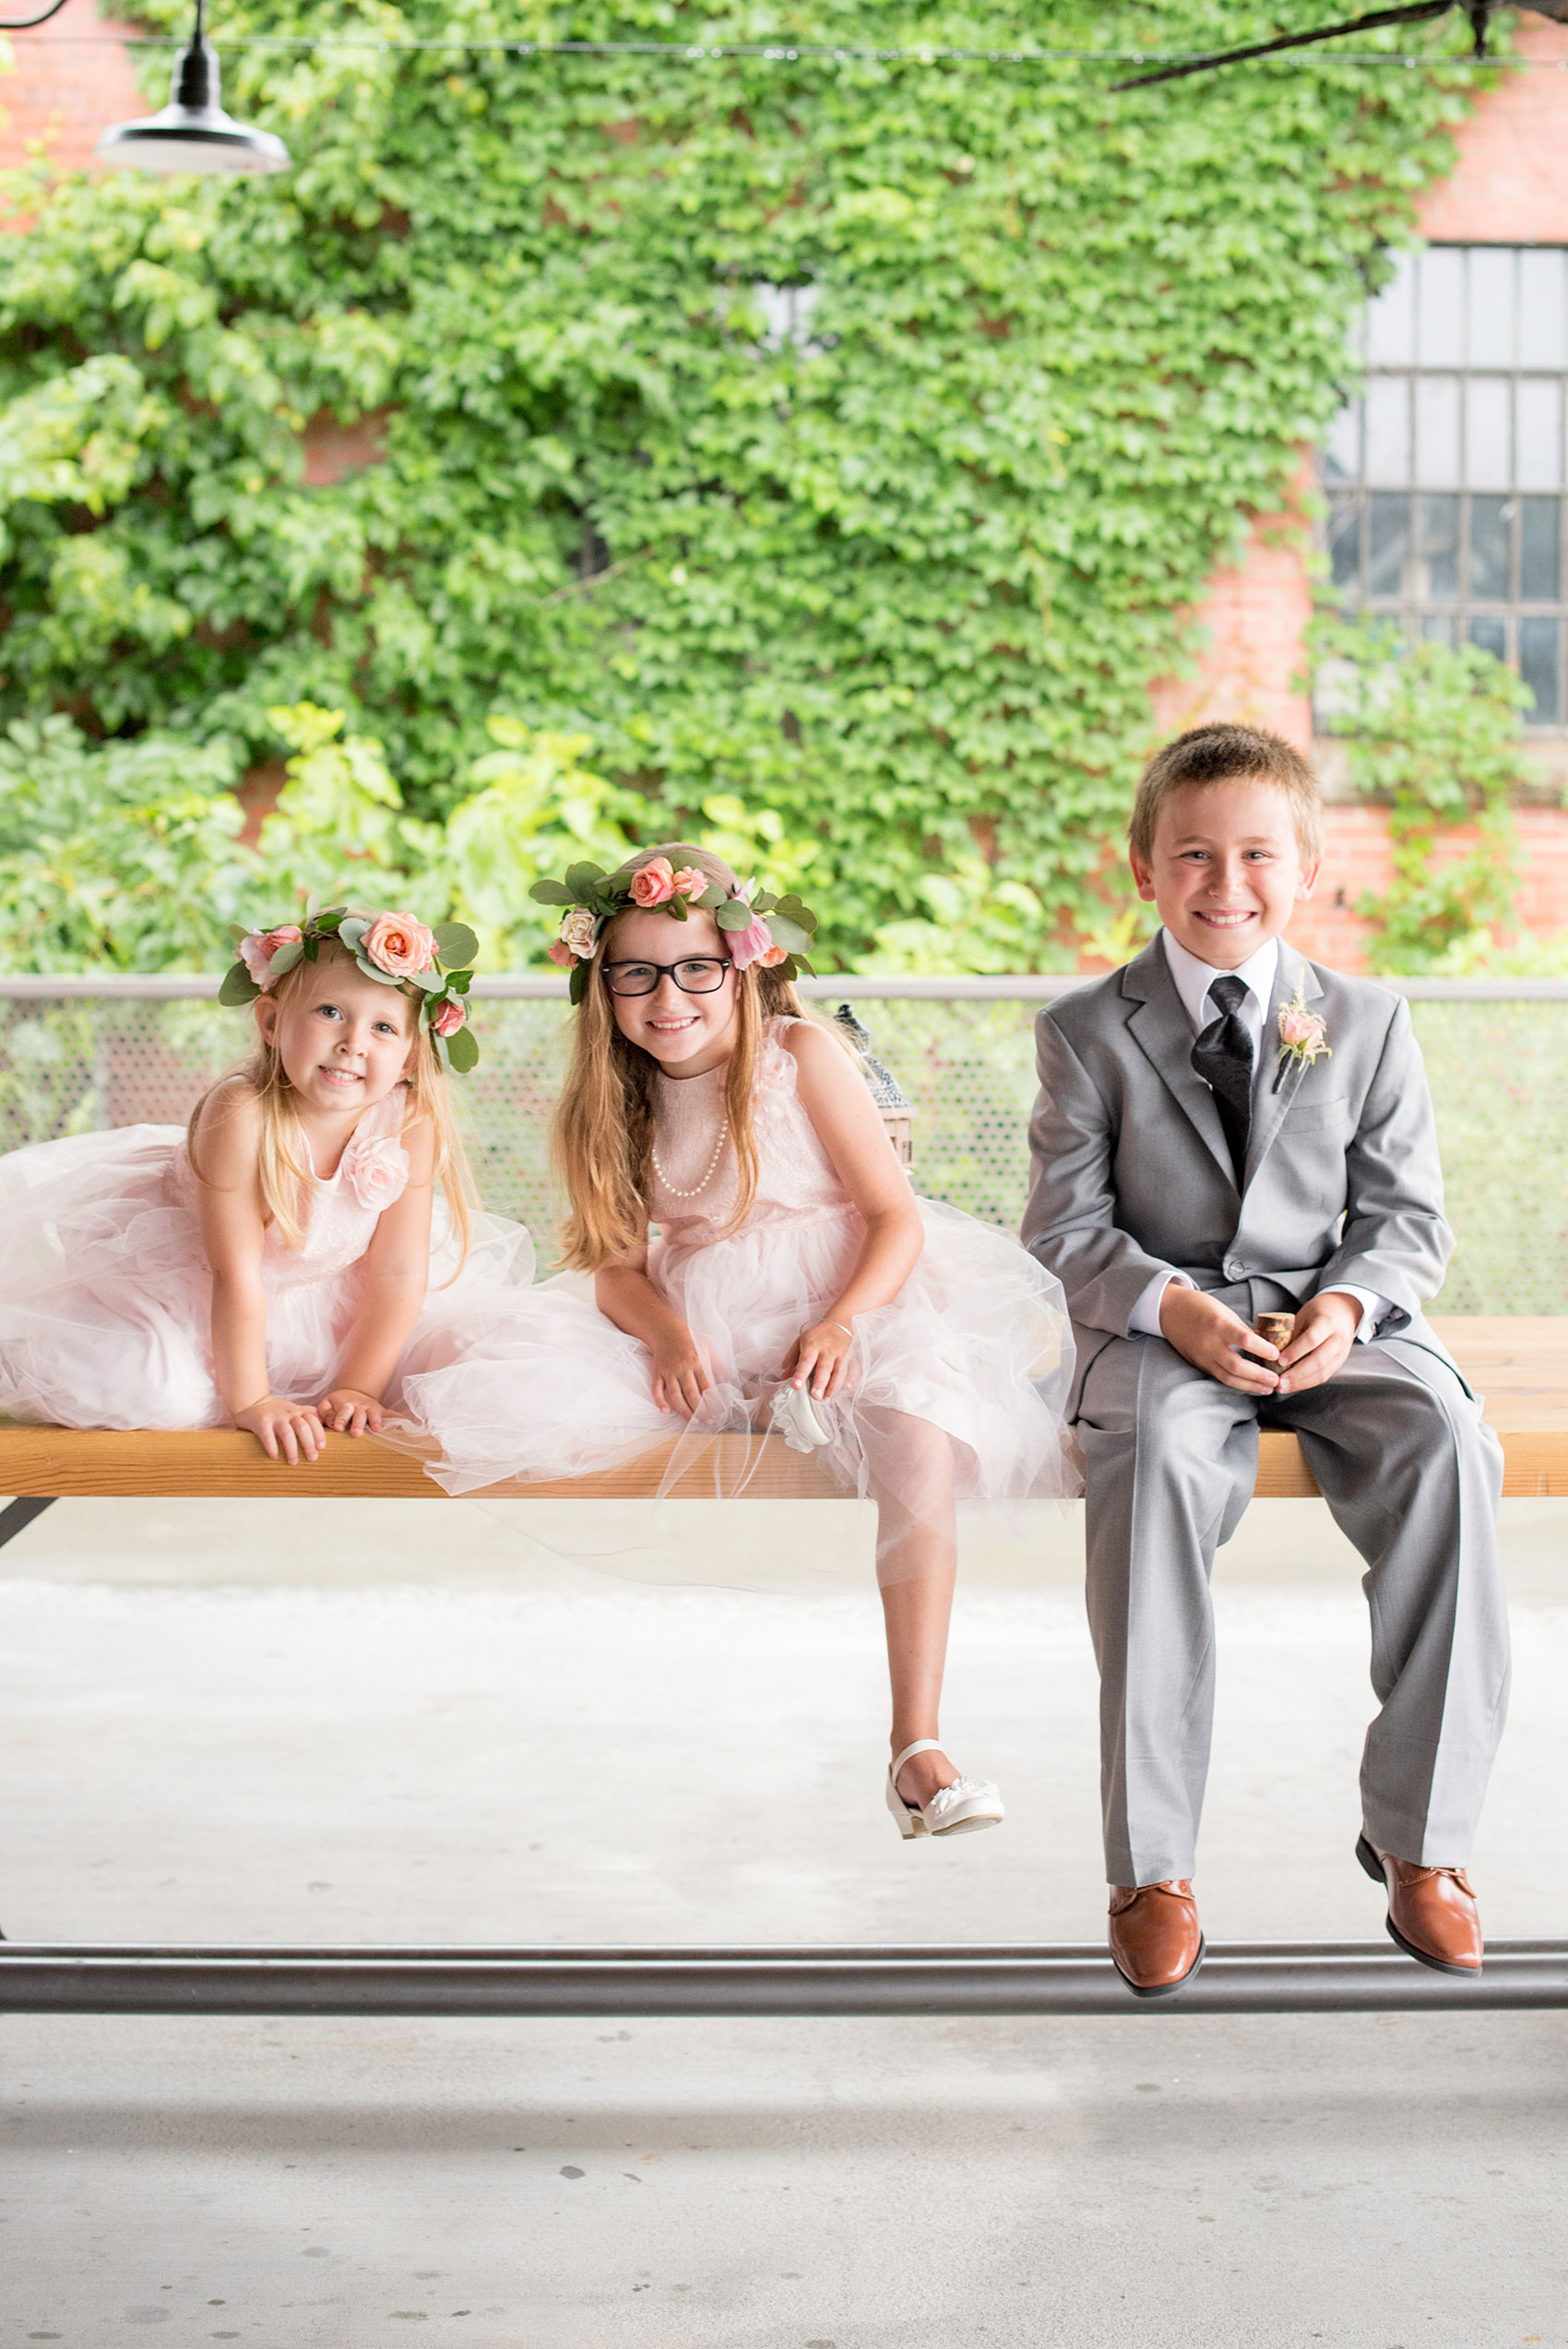 Mikkel Paige Photography photos from a wedding at The Rickhouse in Durham, North Carolina. Picture of the flower girls and ring bearer before the ceremony.